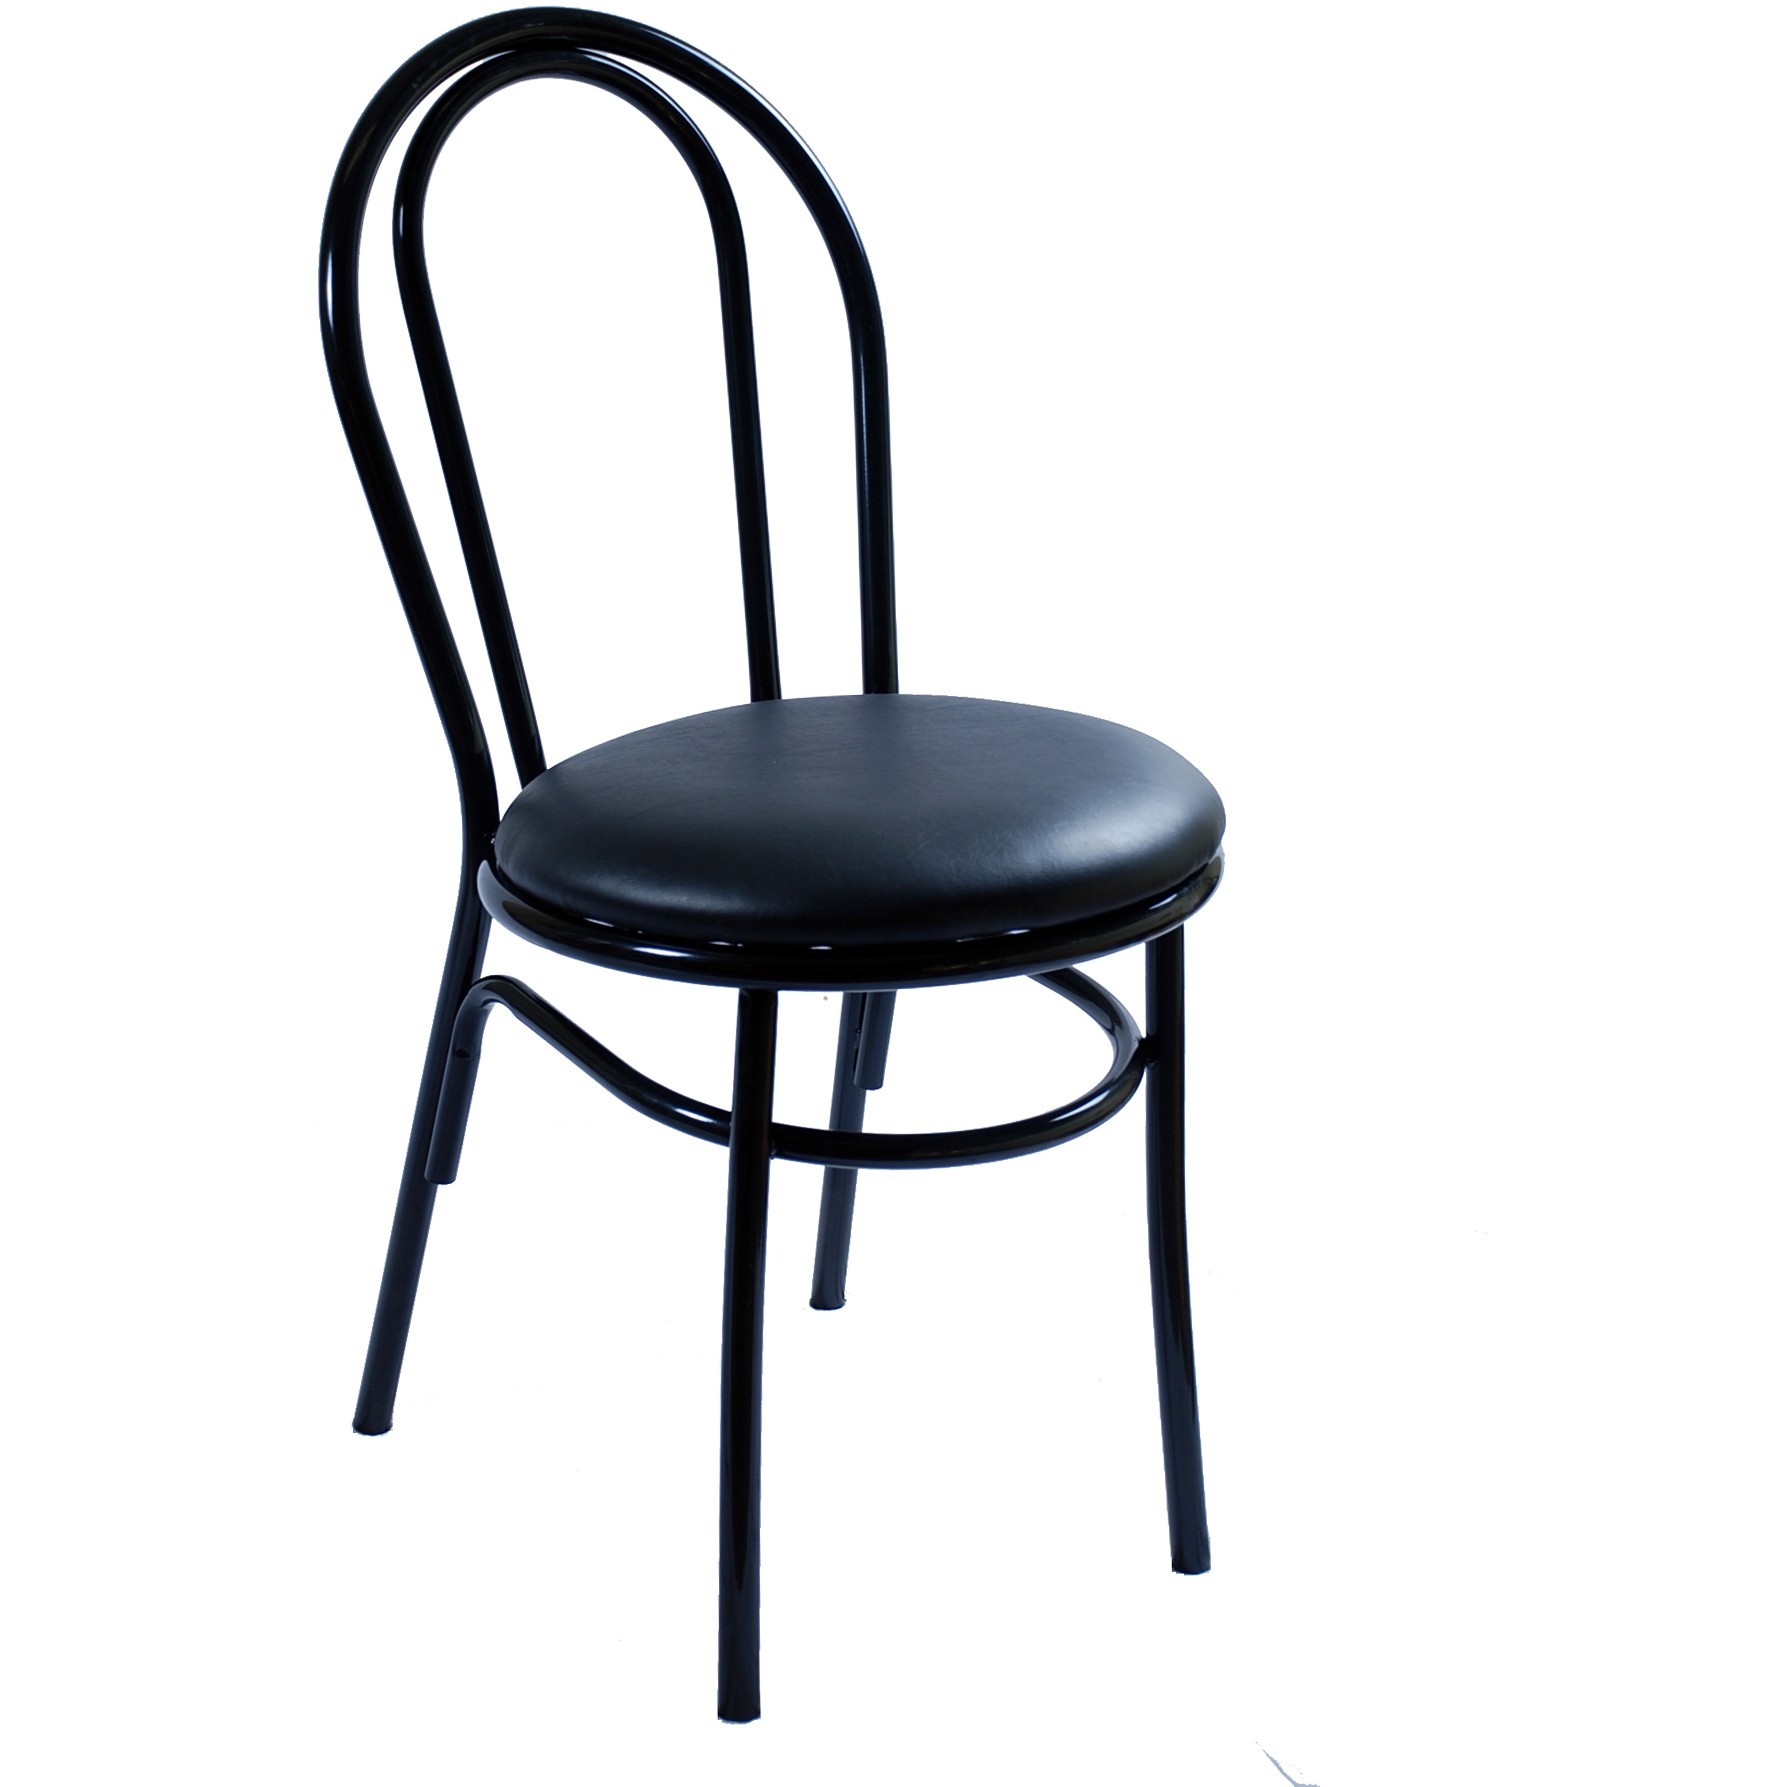 Genial Arc Metal Restaurant Chair   Black Finish With A Red Vinyl Seat